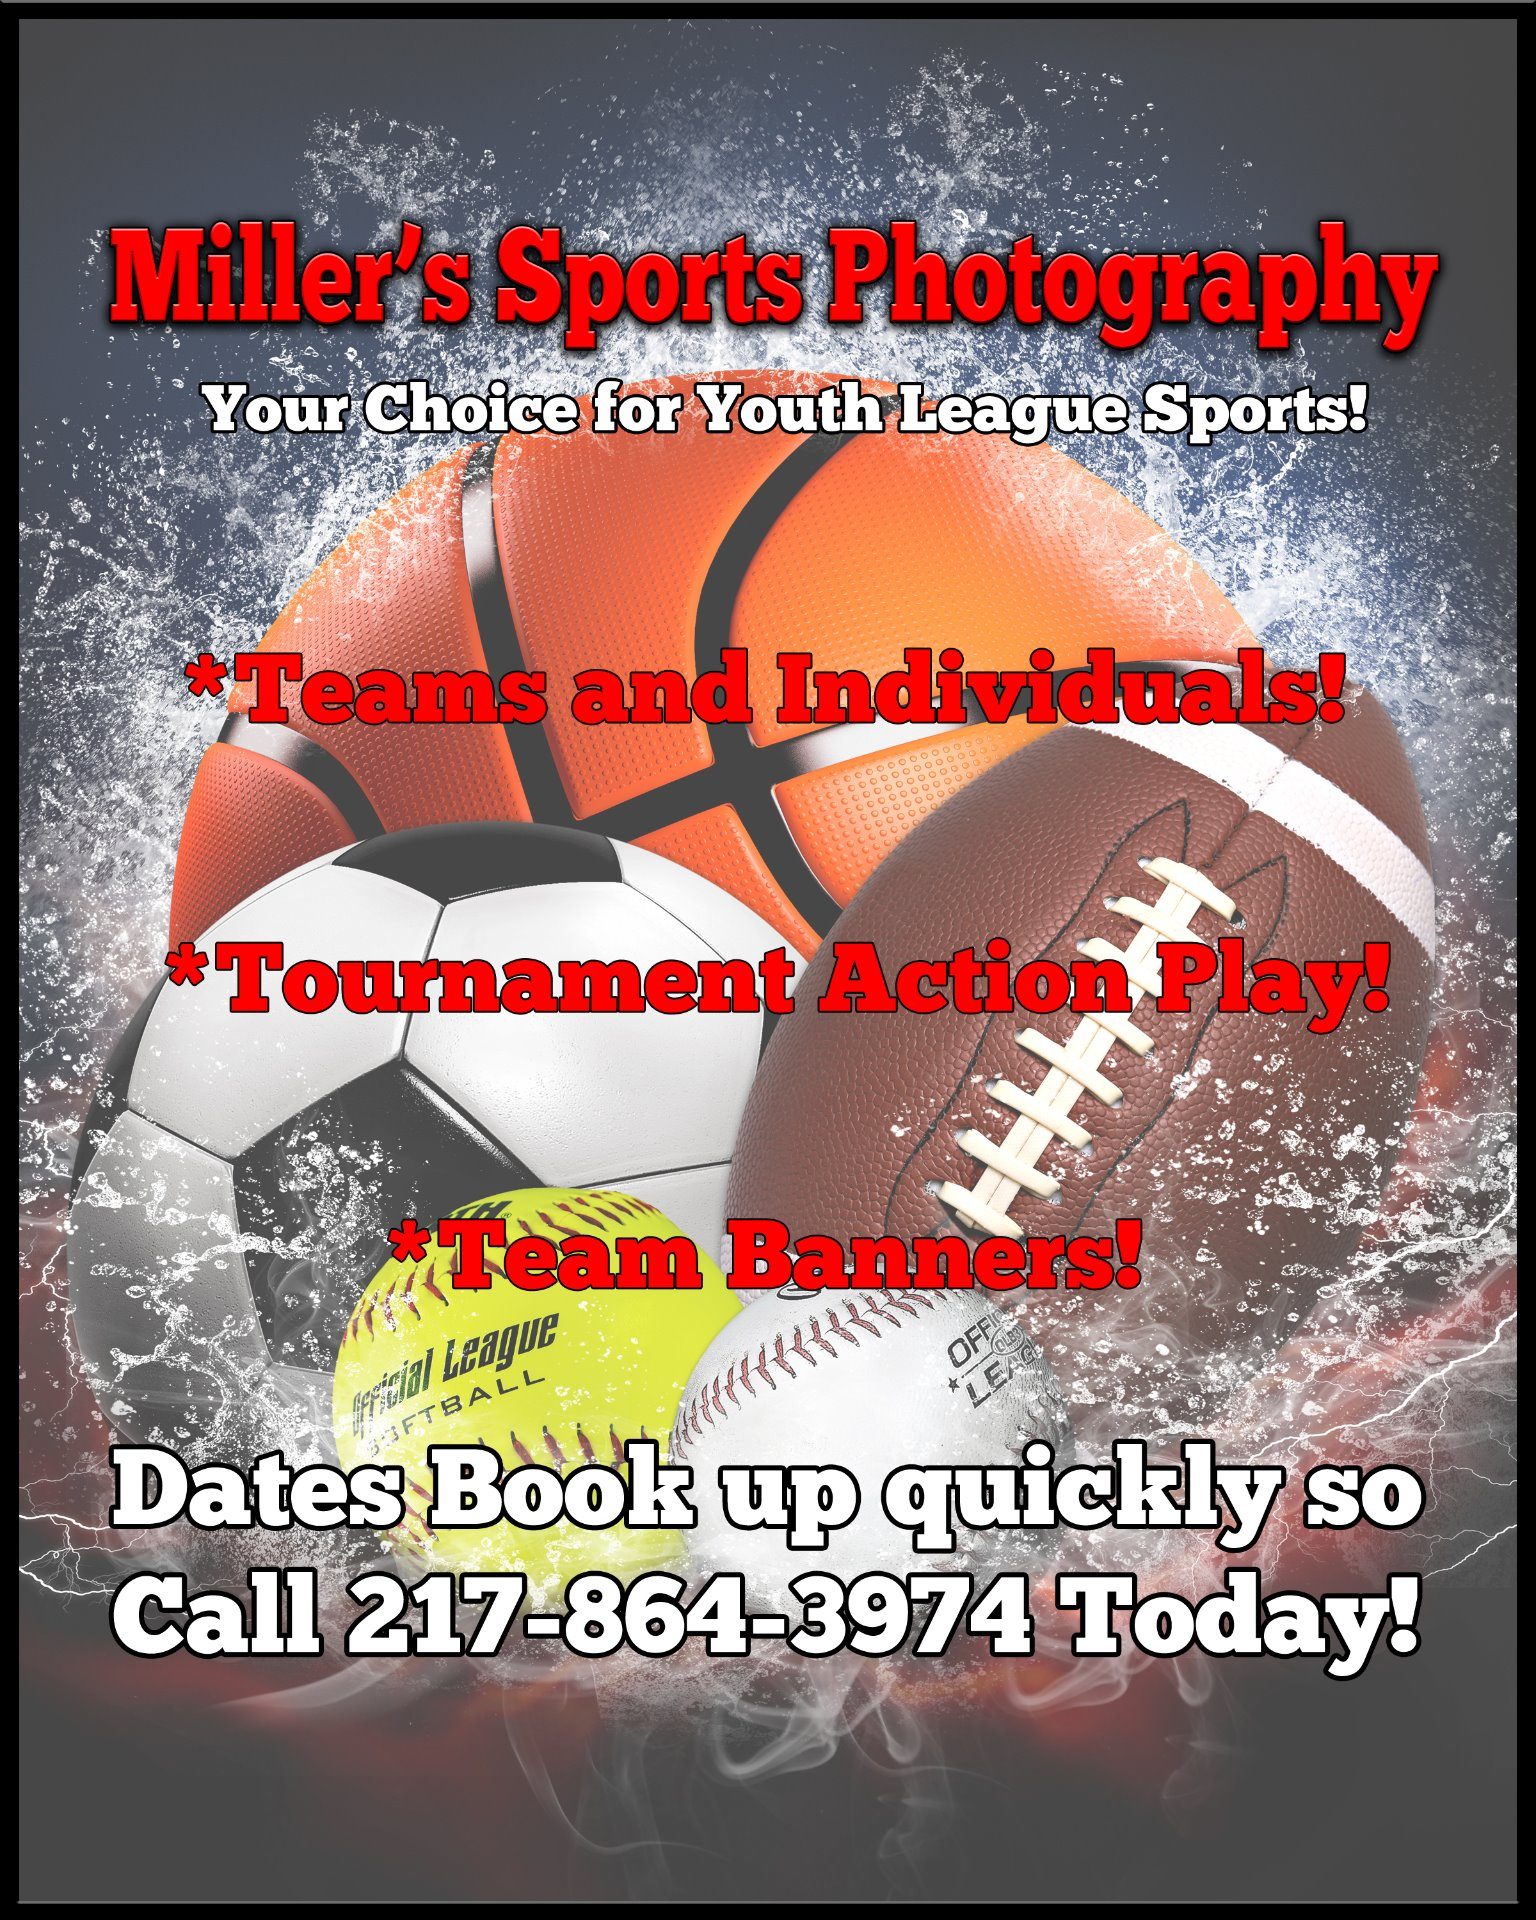 Miller's Sports